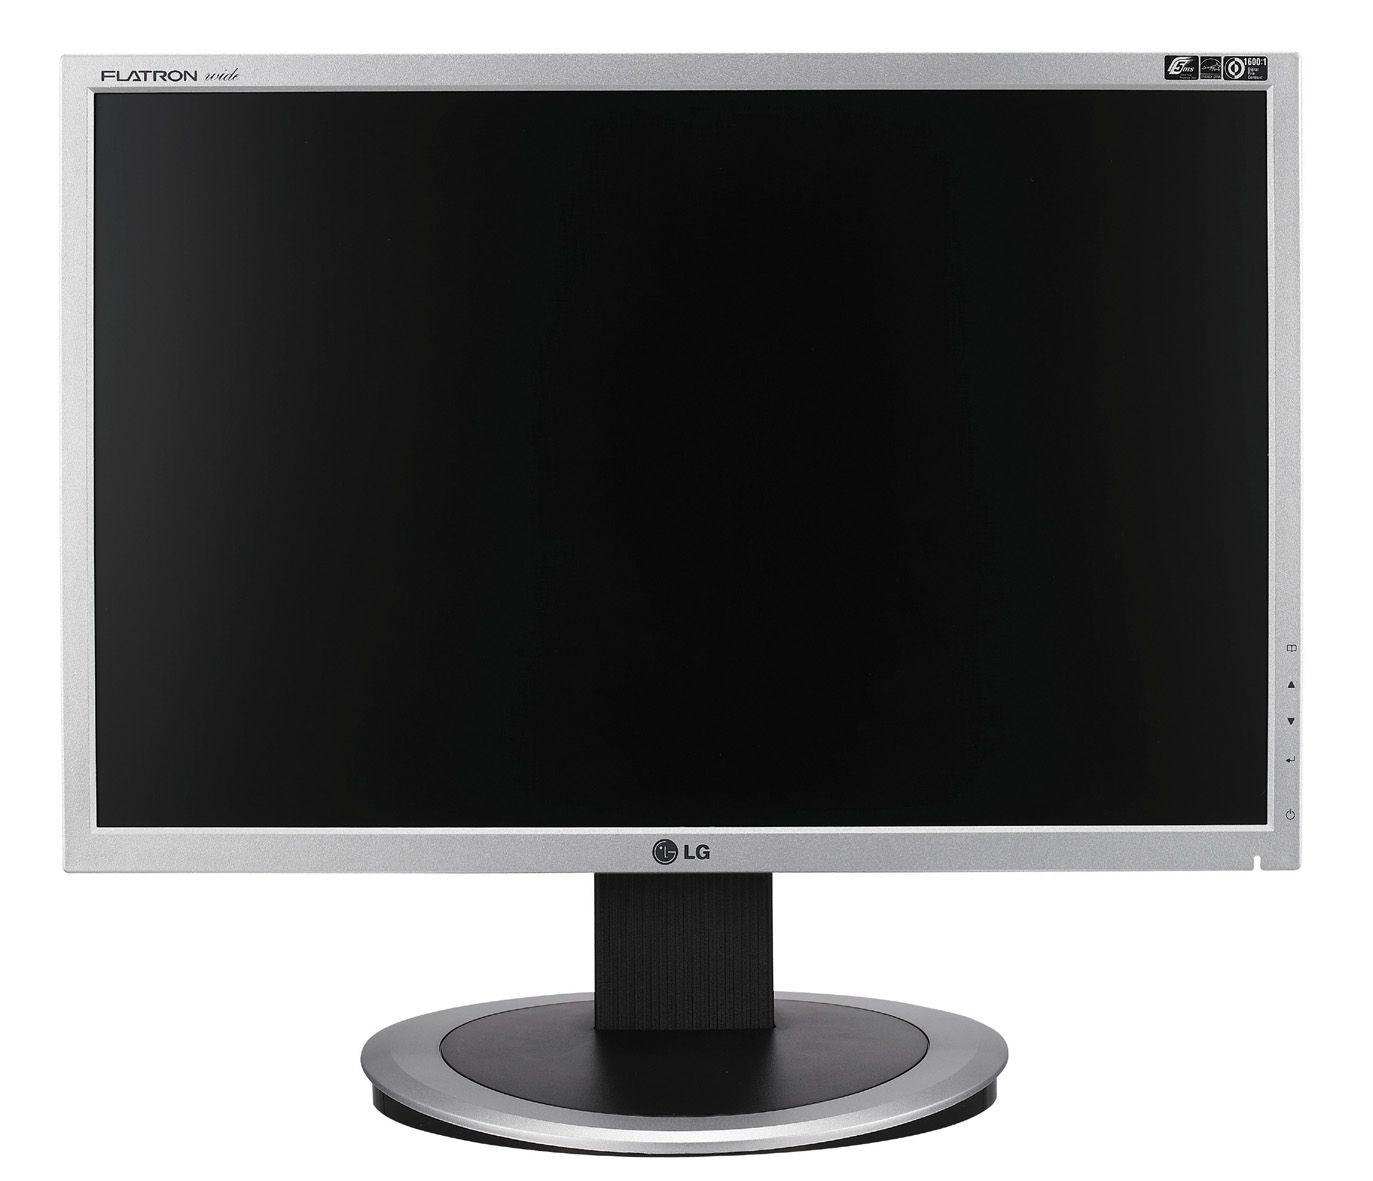 File:LG L194WT-SF LCD monitor.jpg - Wikipedia